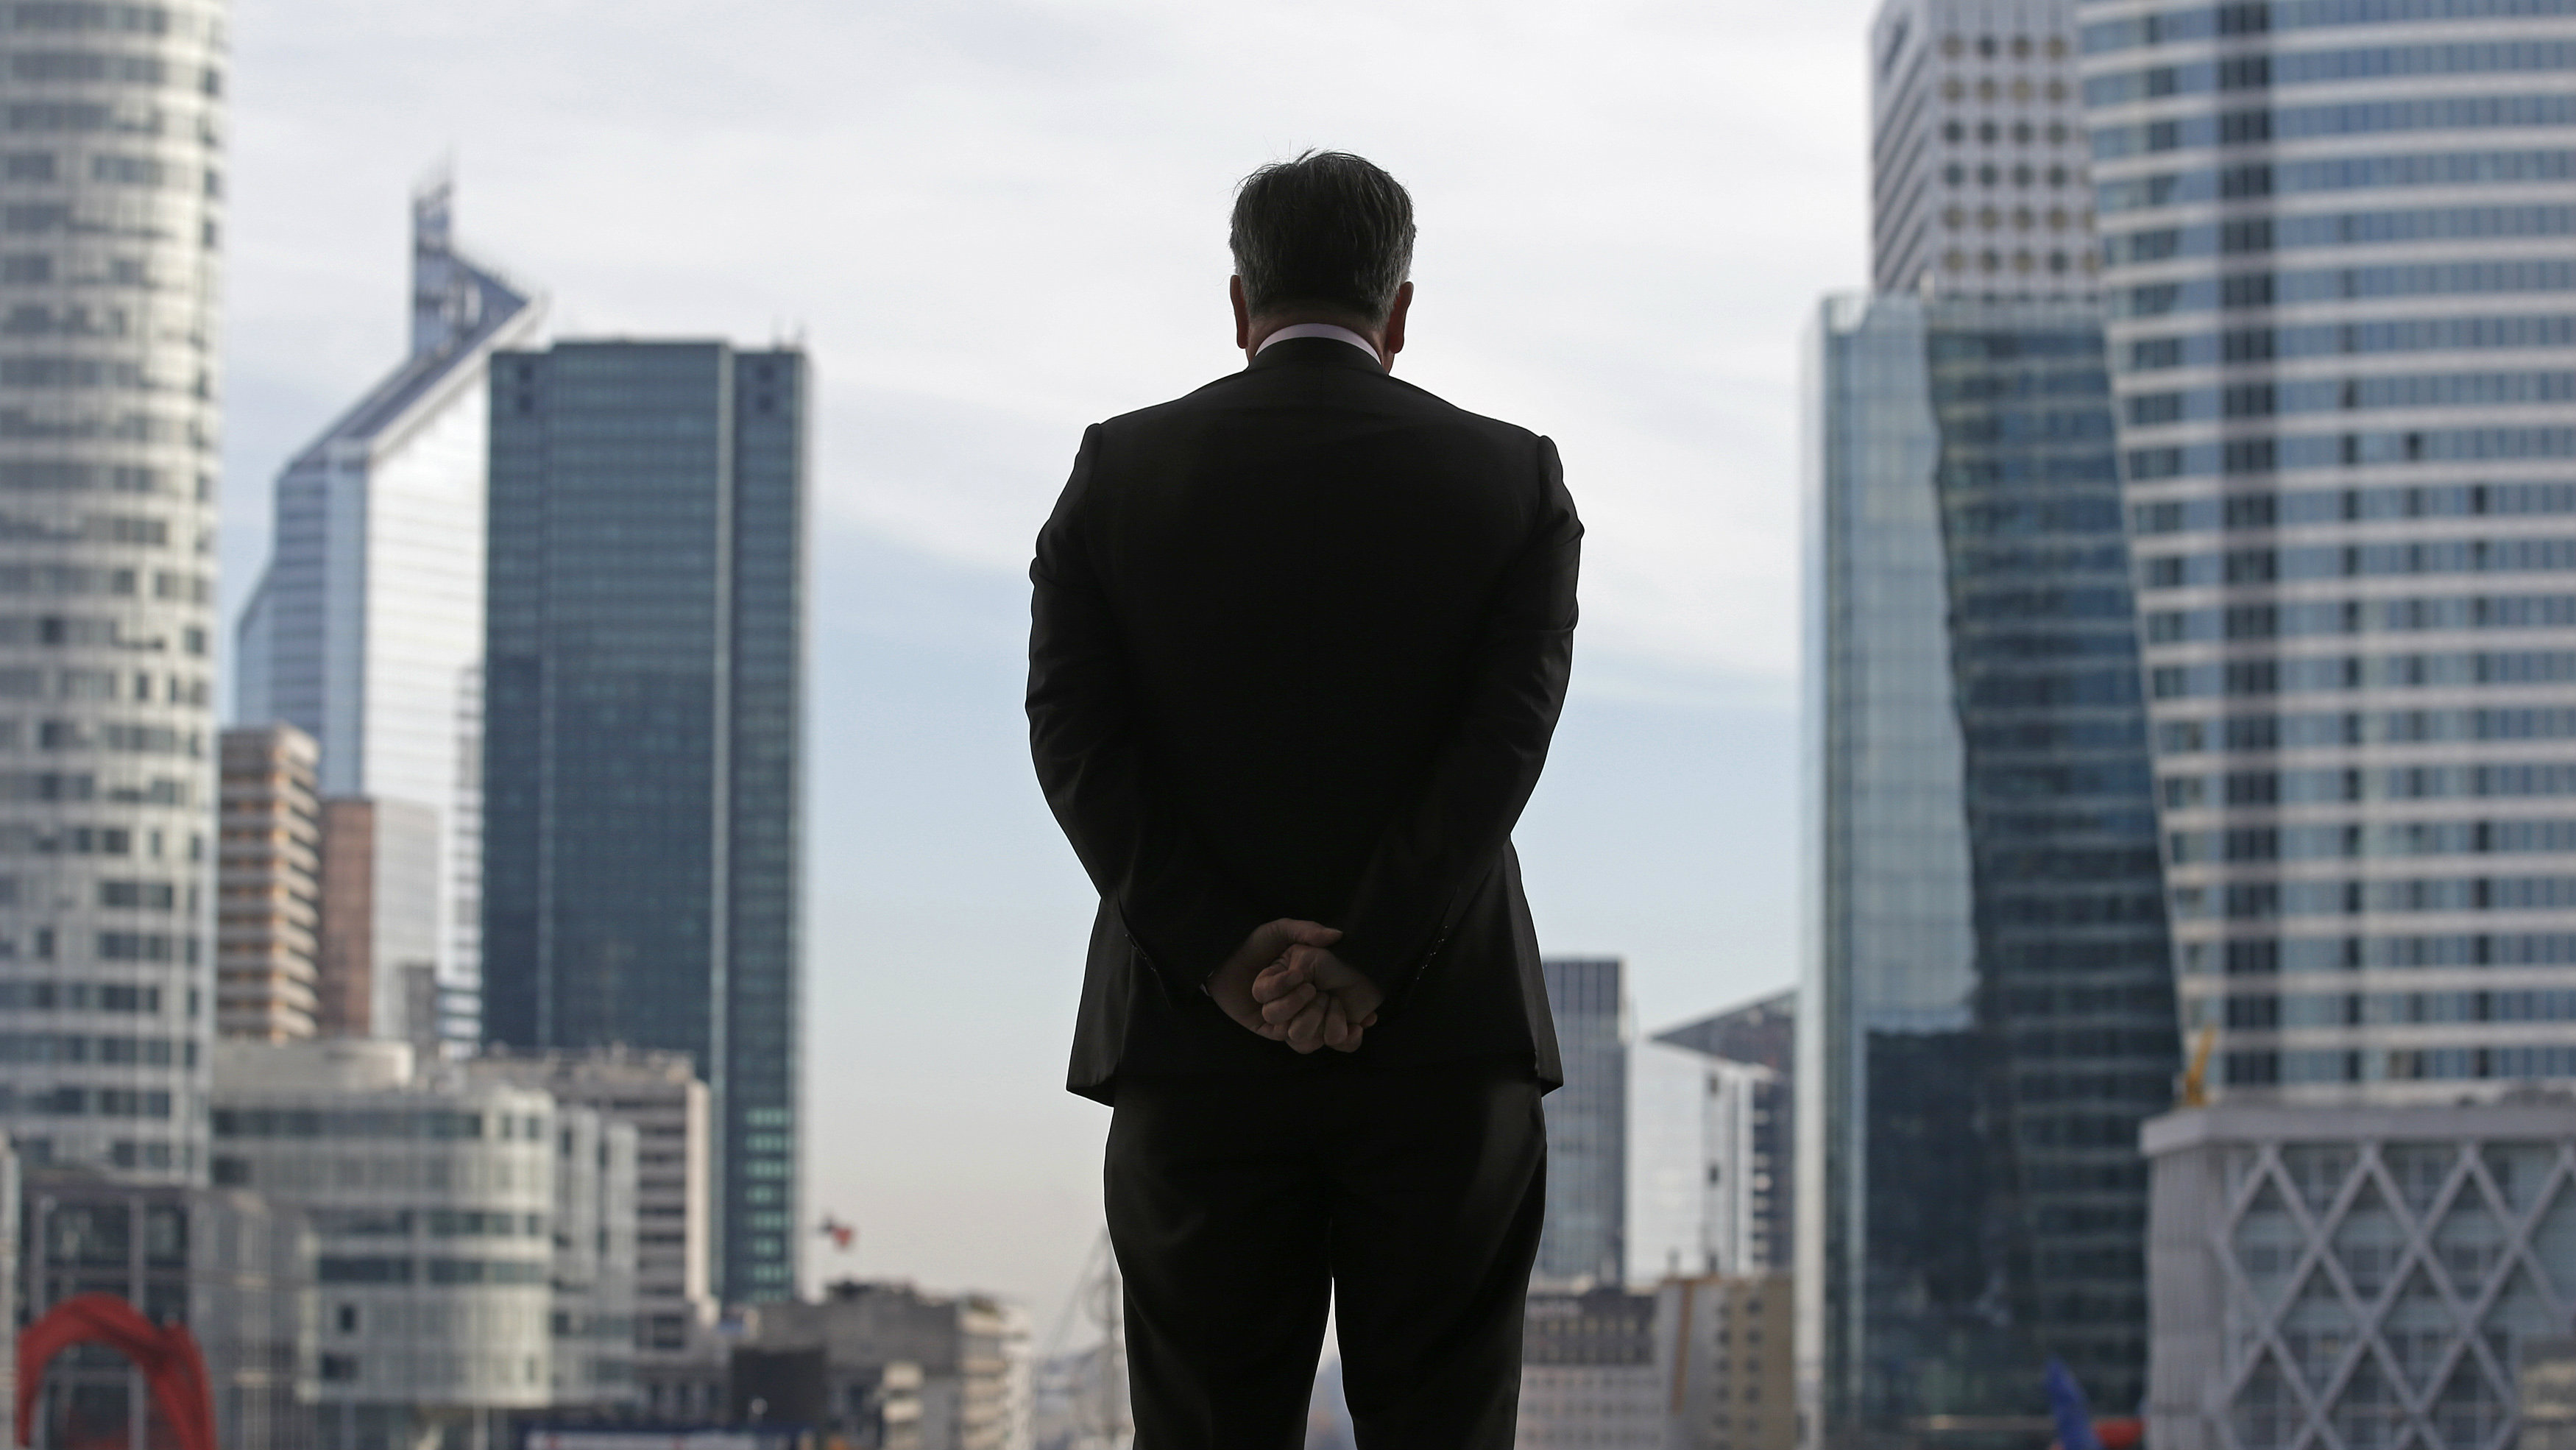 A Businessman is silhouetted as he stands under the Arche de la Defense, in the financial district west of Paris, November 20, 2012. France said its economy was sound and reforms were on track after credit ratings agency Moody's stripped it of the prized triple-A badge due to an uncertain fiscal and economic outlook. Monday's downgrade, which follows a cut by Standard & Poor's in January, was expected but is a blow to Socialist President Francois Hollande as he tries to fix France's finances and revive the euro zone's second largest economy.